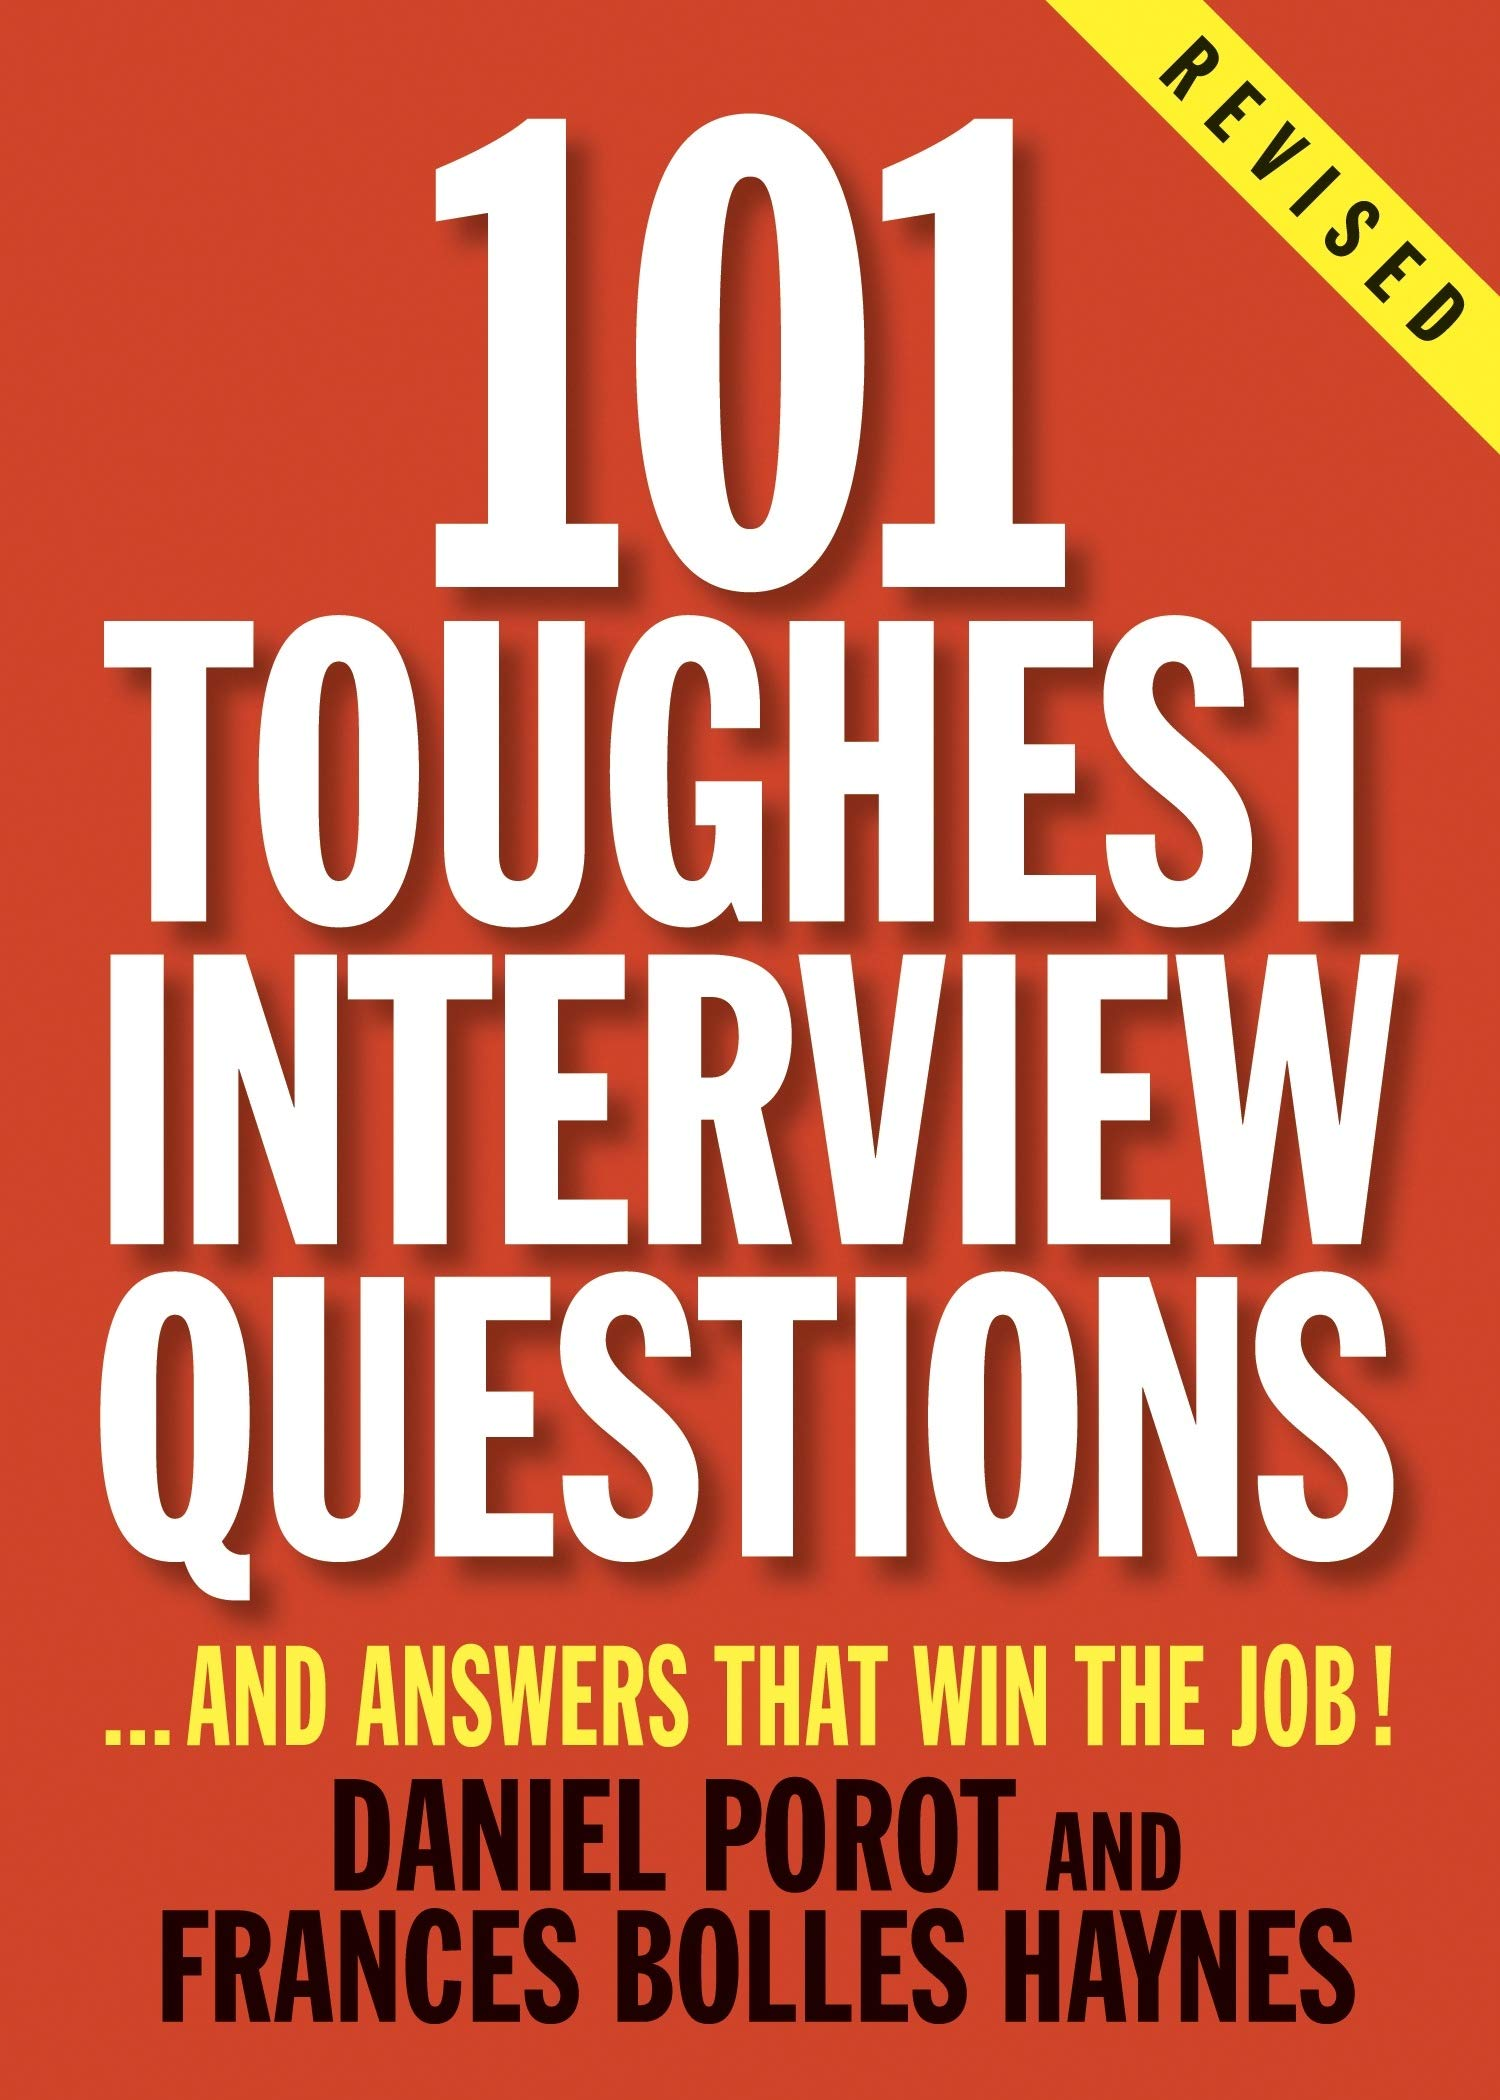 Image Of101 Toughest Interview Questions: And Answers That Win The Job! (101 Toughest Interview Questions & Answers That Win The Job)